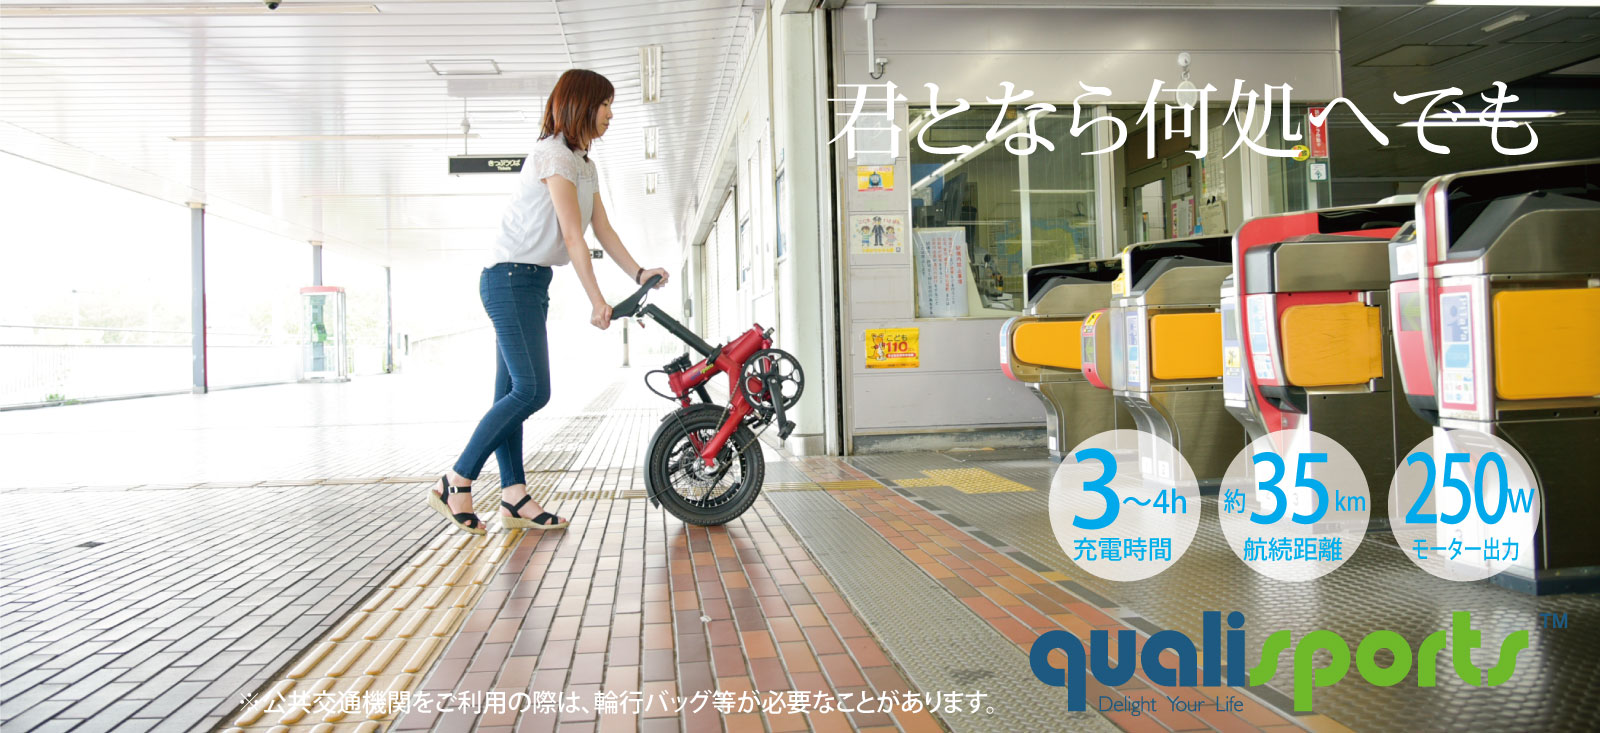 Q_selling-point_3